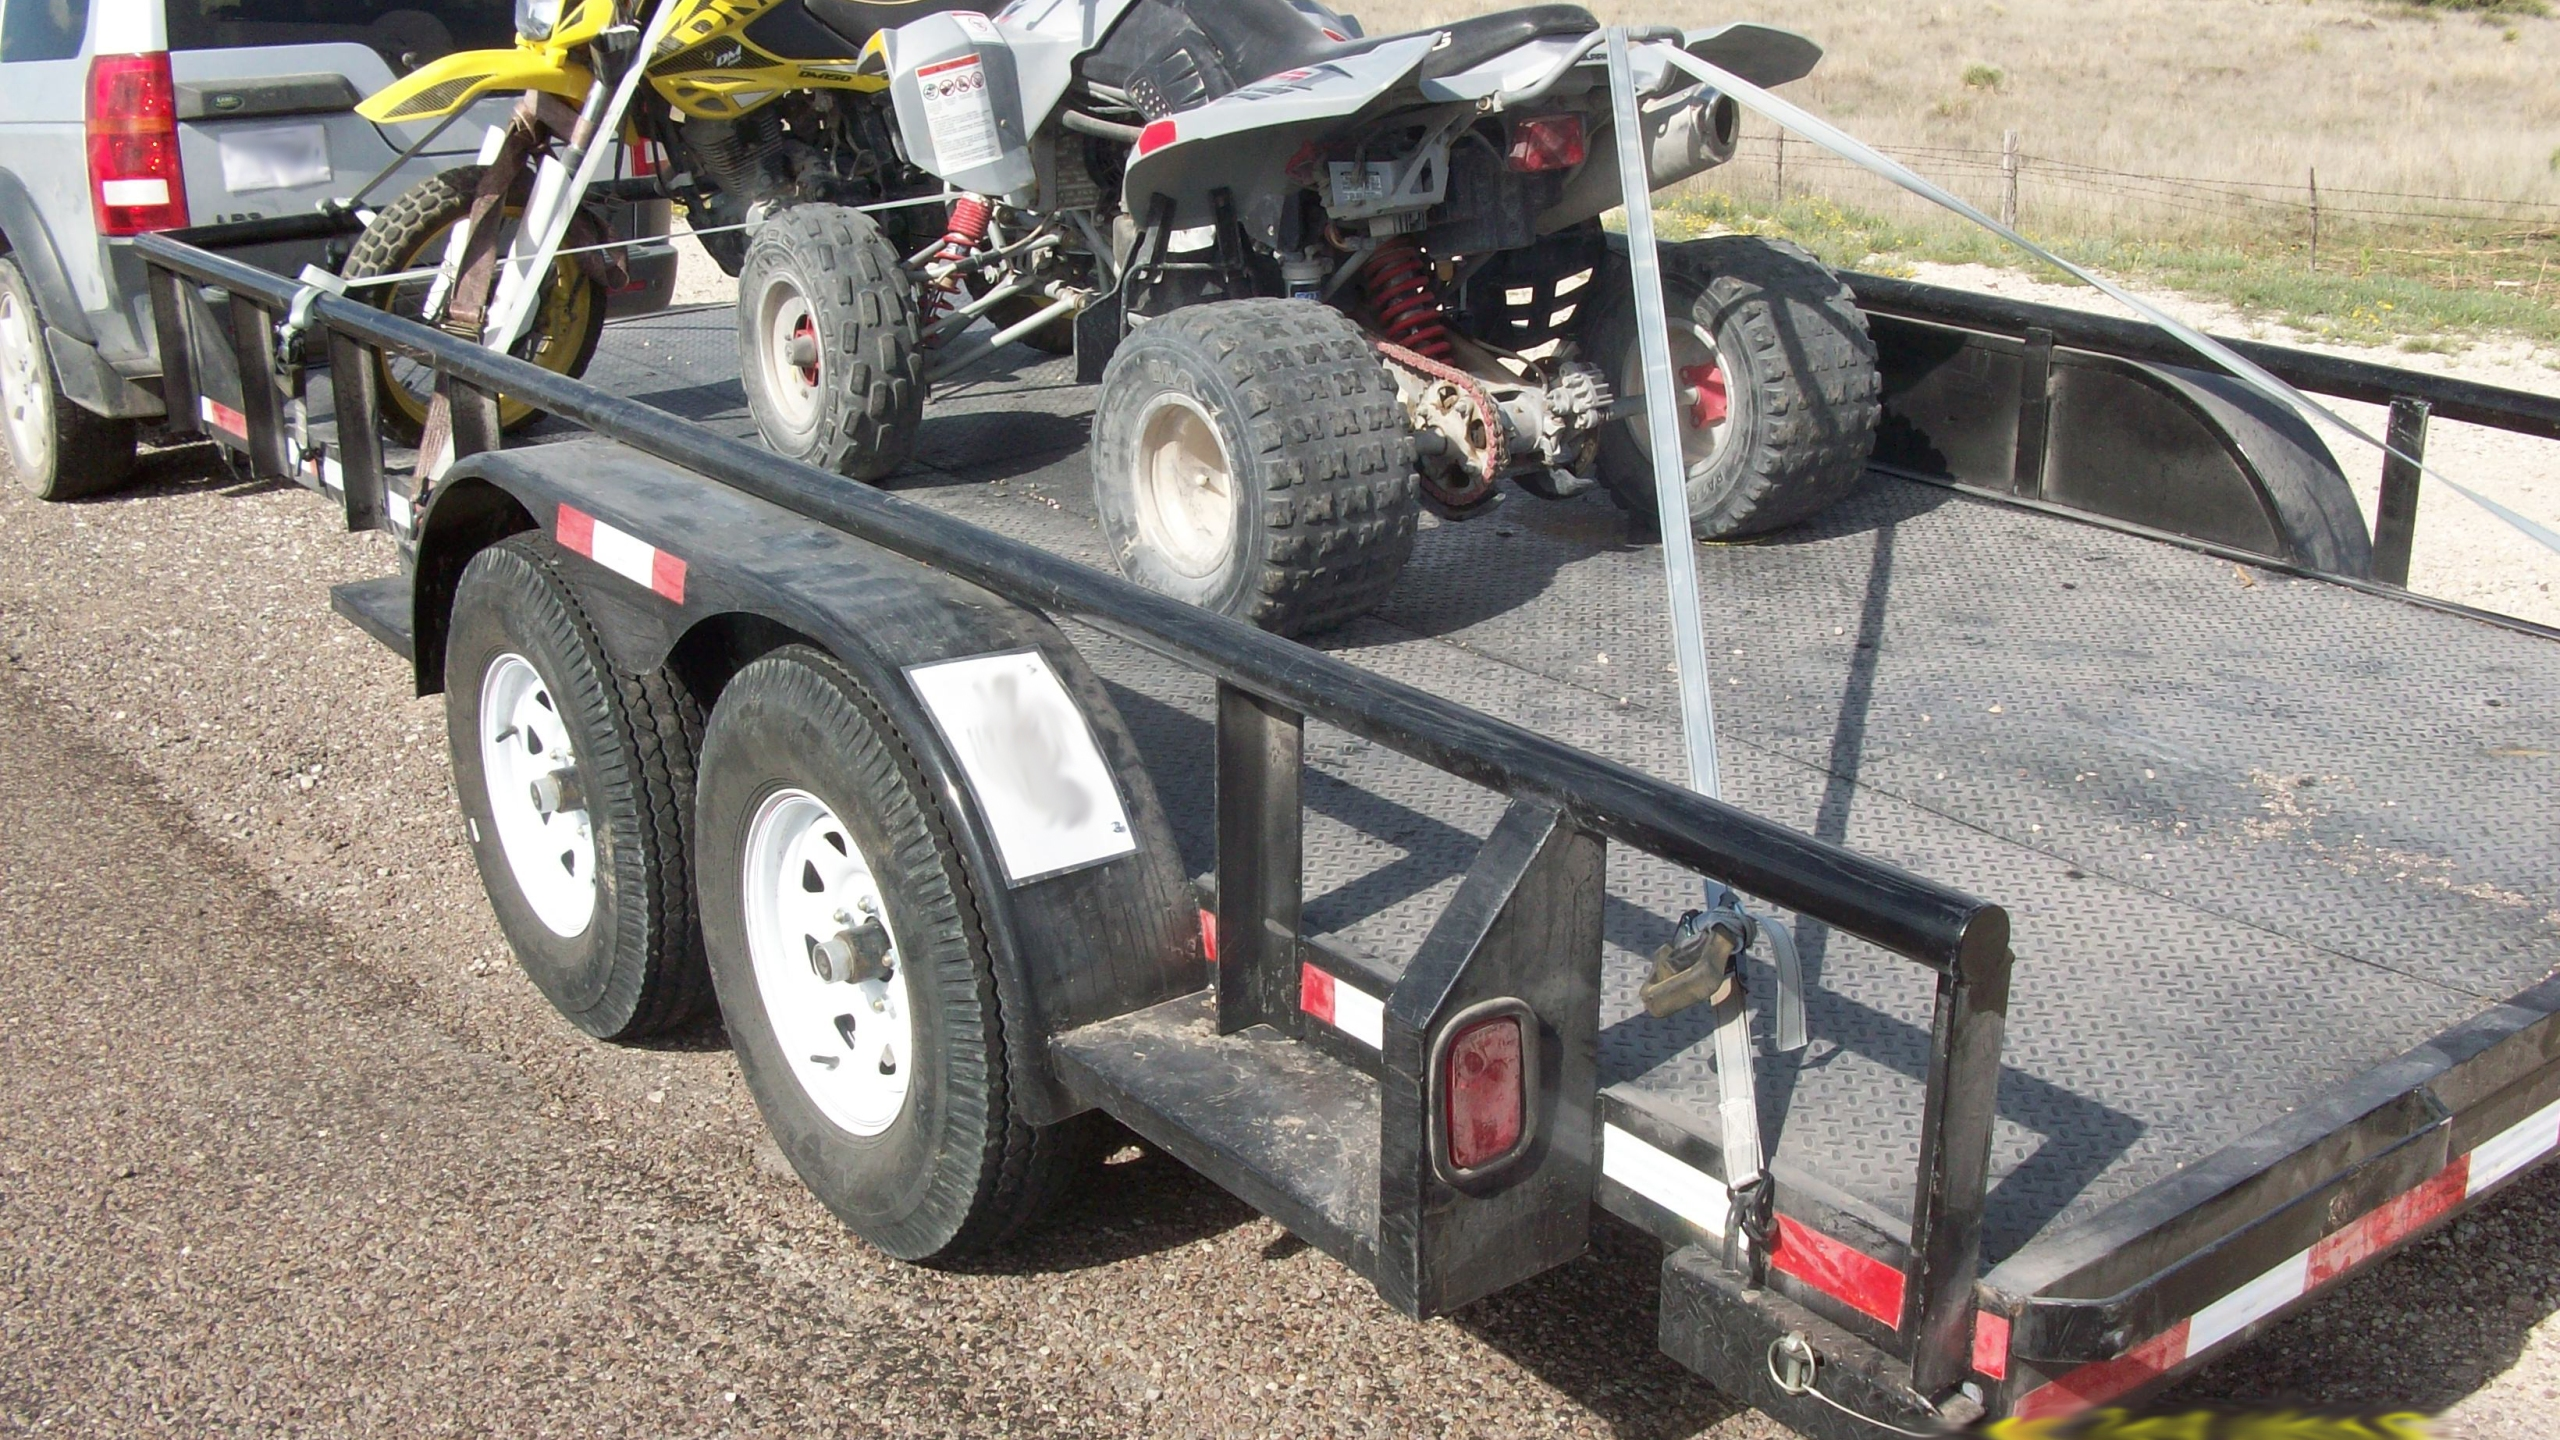 trailer with concealed narcotics (1)_1464108699457.JPG